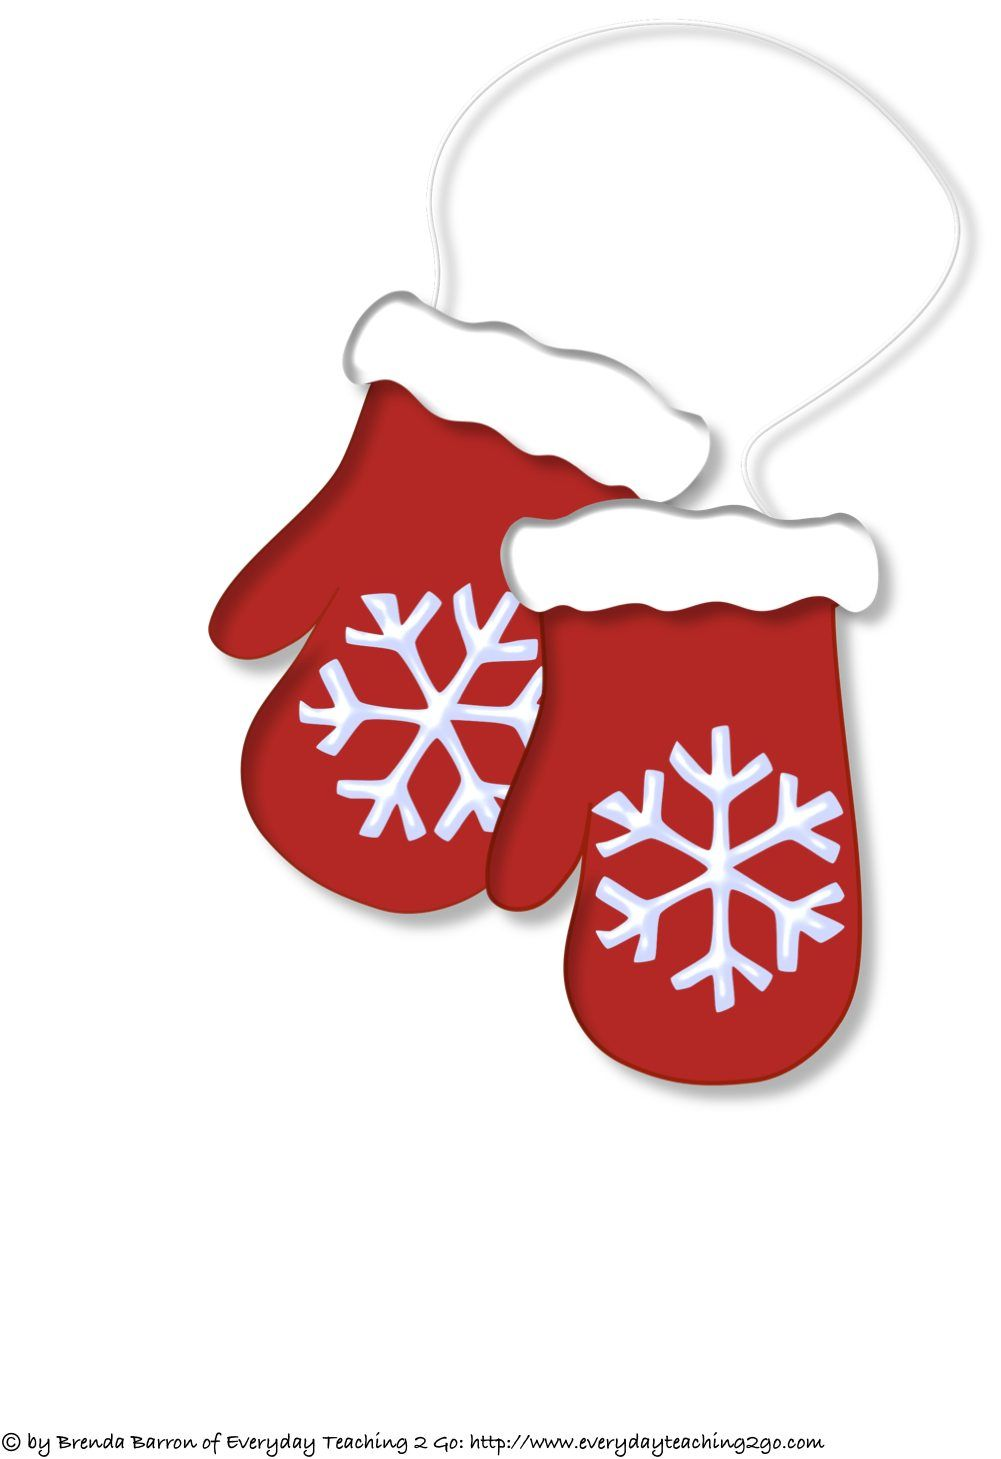 Mittens clipart red mitten. Pin on bags